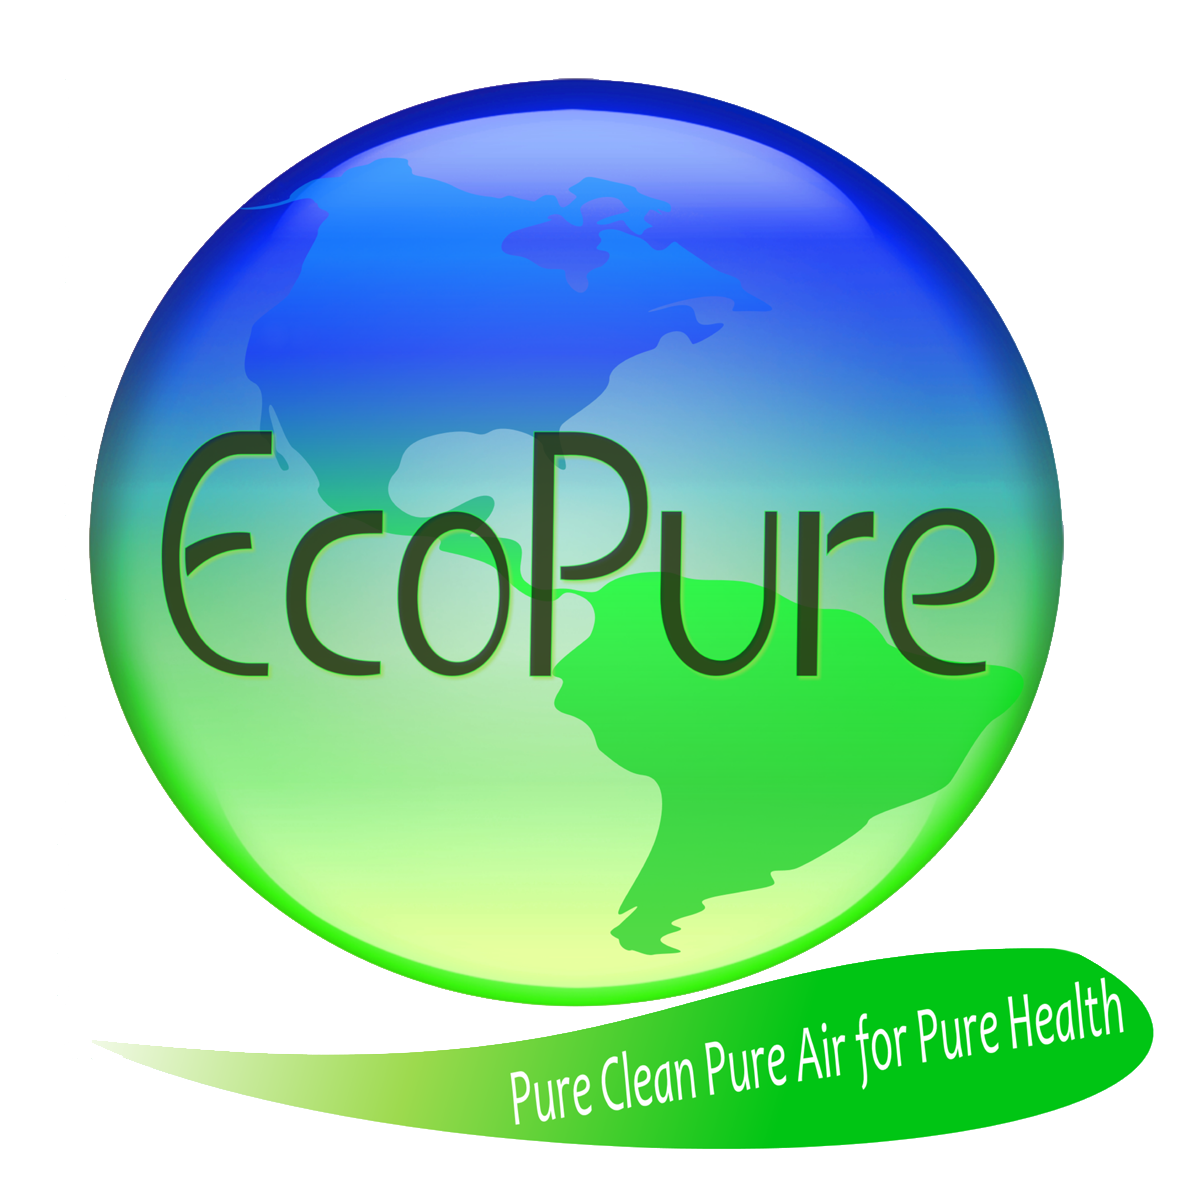 Eco Pure Cincinnati